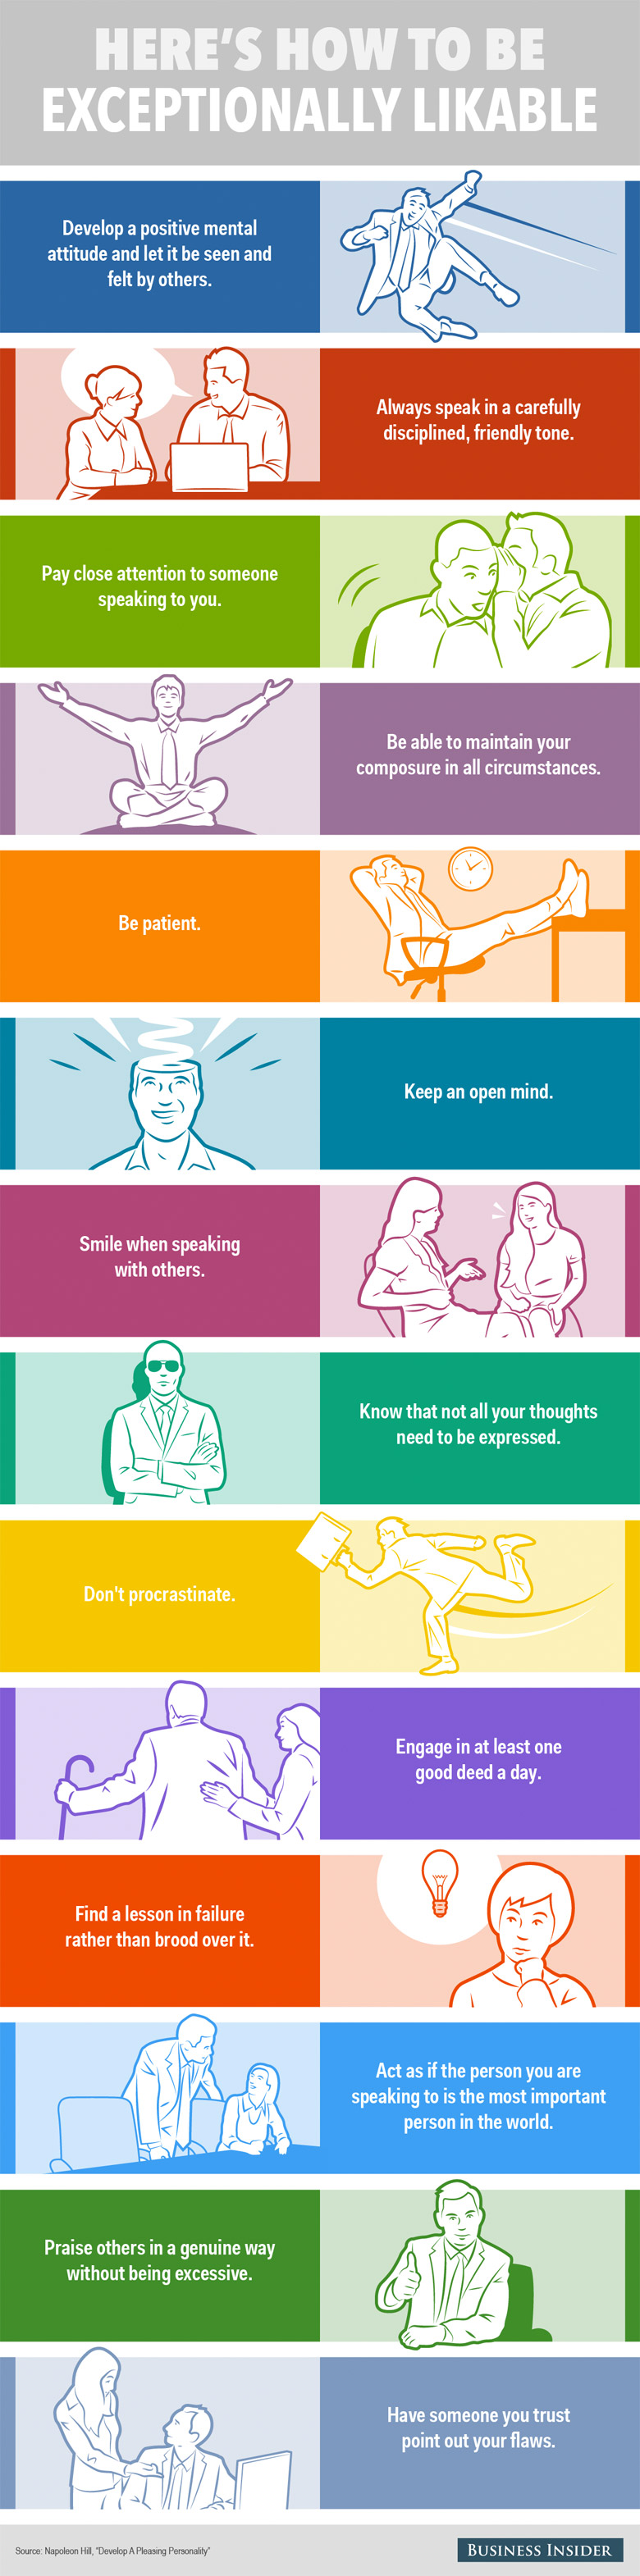 14 Habits Of Exceptionally Likable People (Infographic)